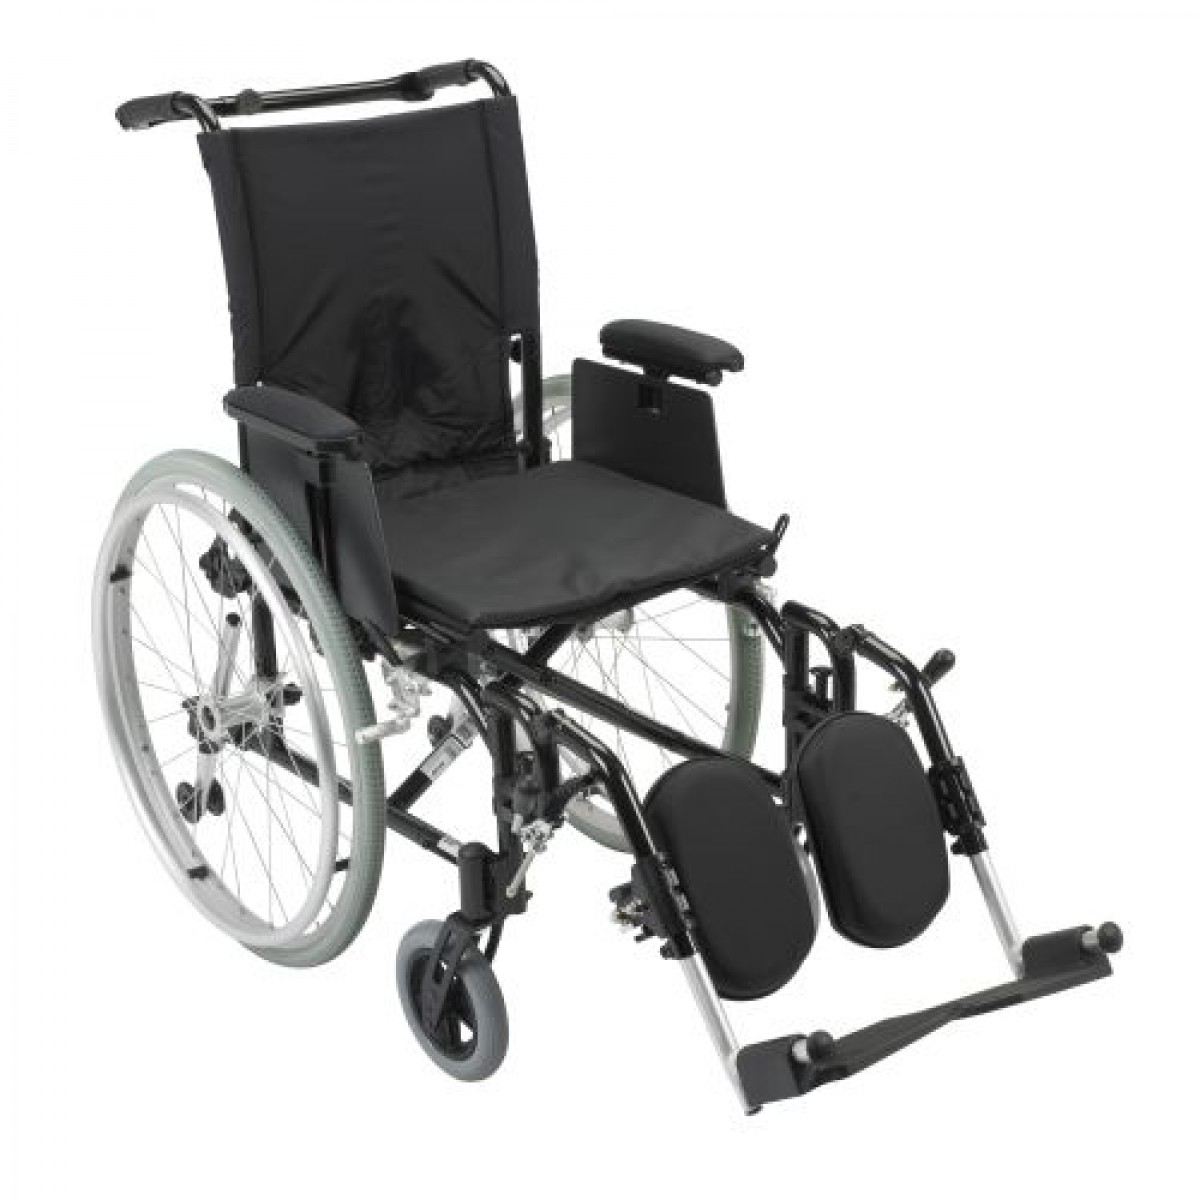 cougar ultra lightweight rehab wheelchair by drive medical. Black Bedroom Furniture Sets. Home Design Ideas